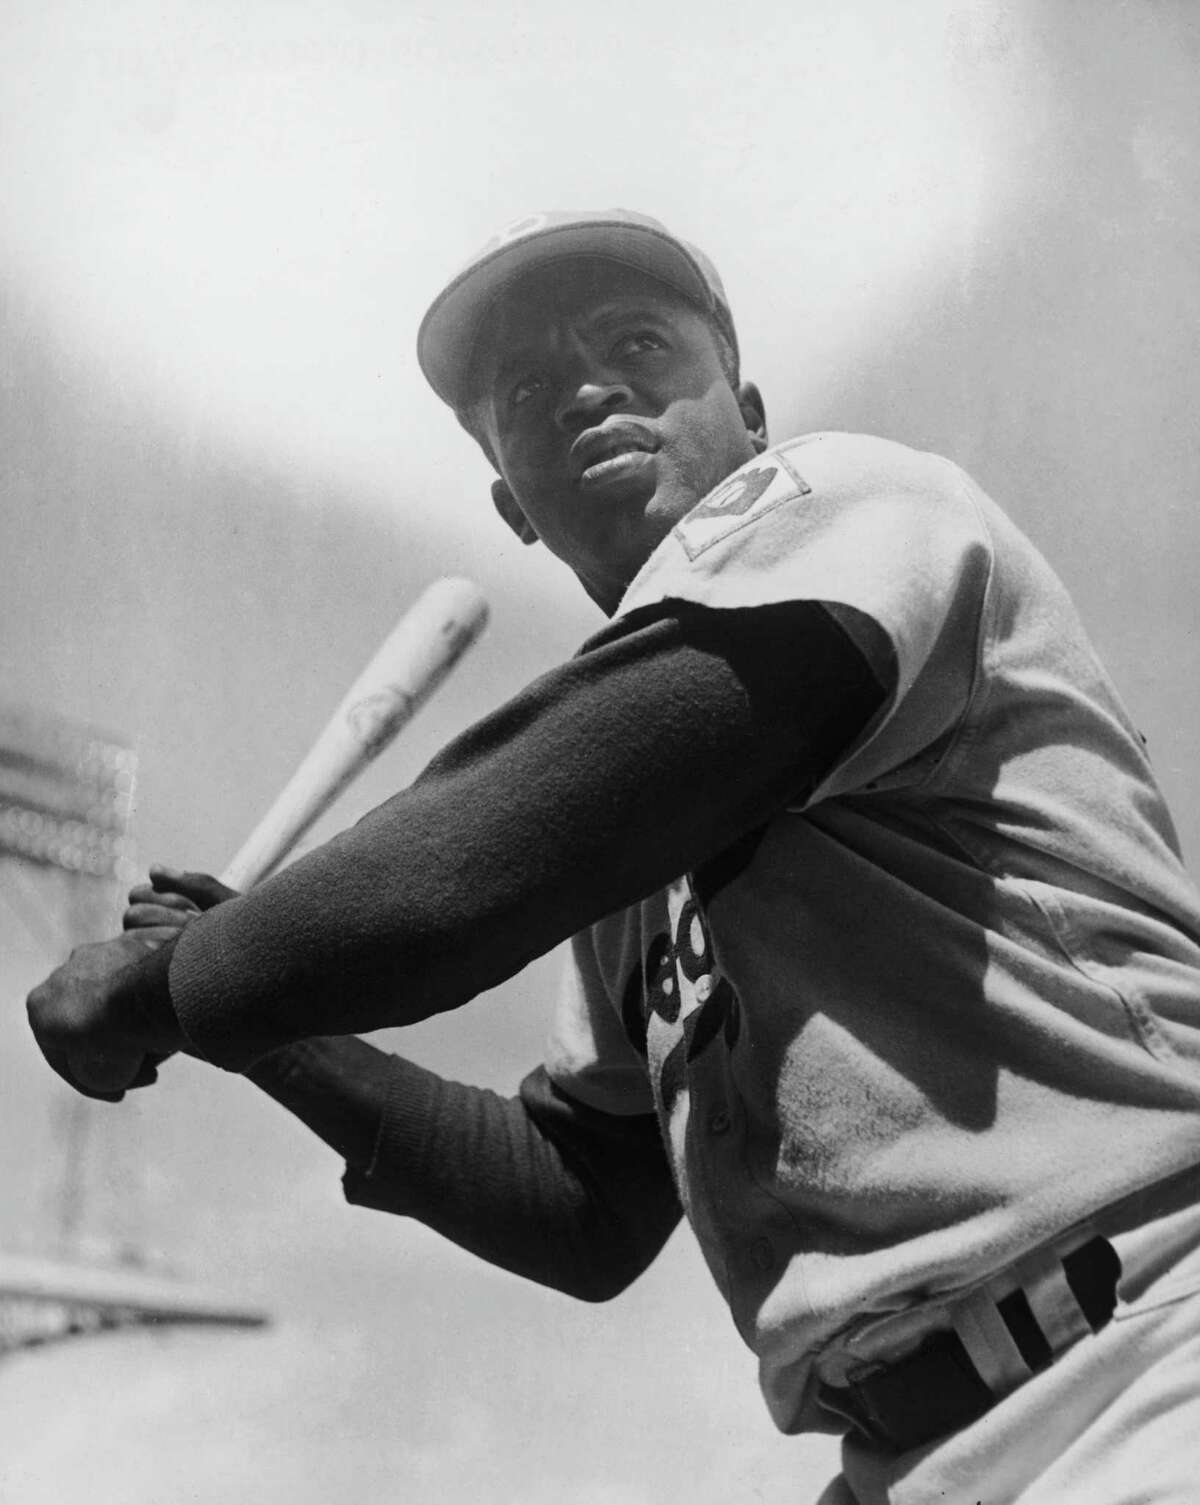 Jackie Robinson, the Major League Baseball's first Black player, moved to Stamford in the 1950s.